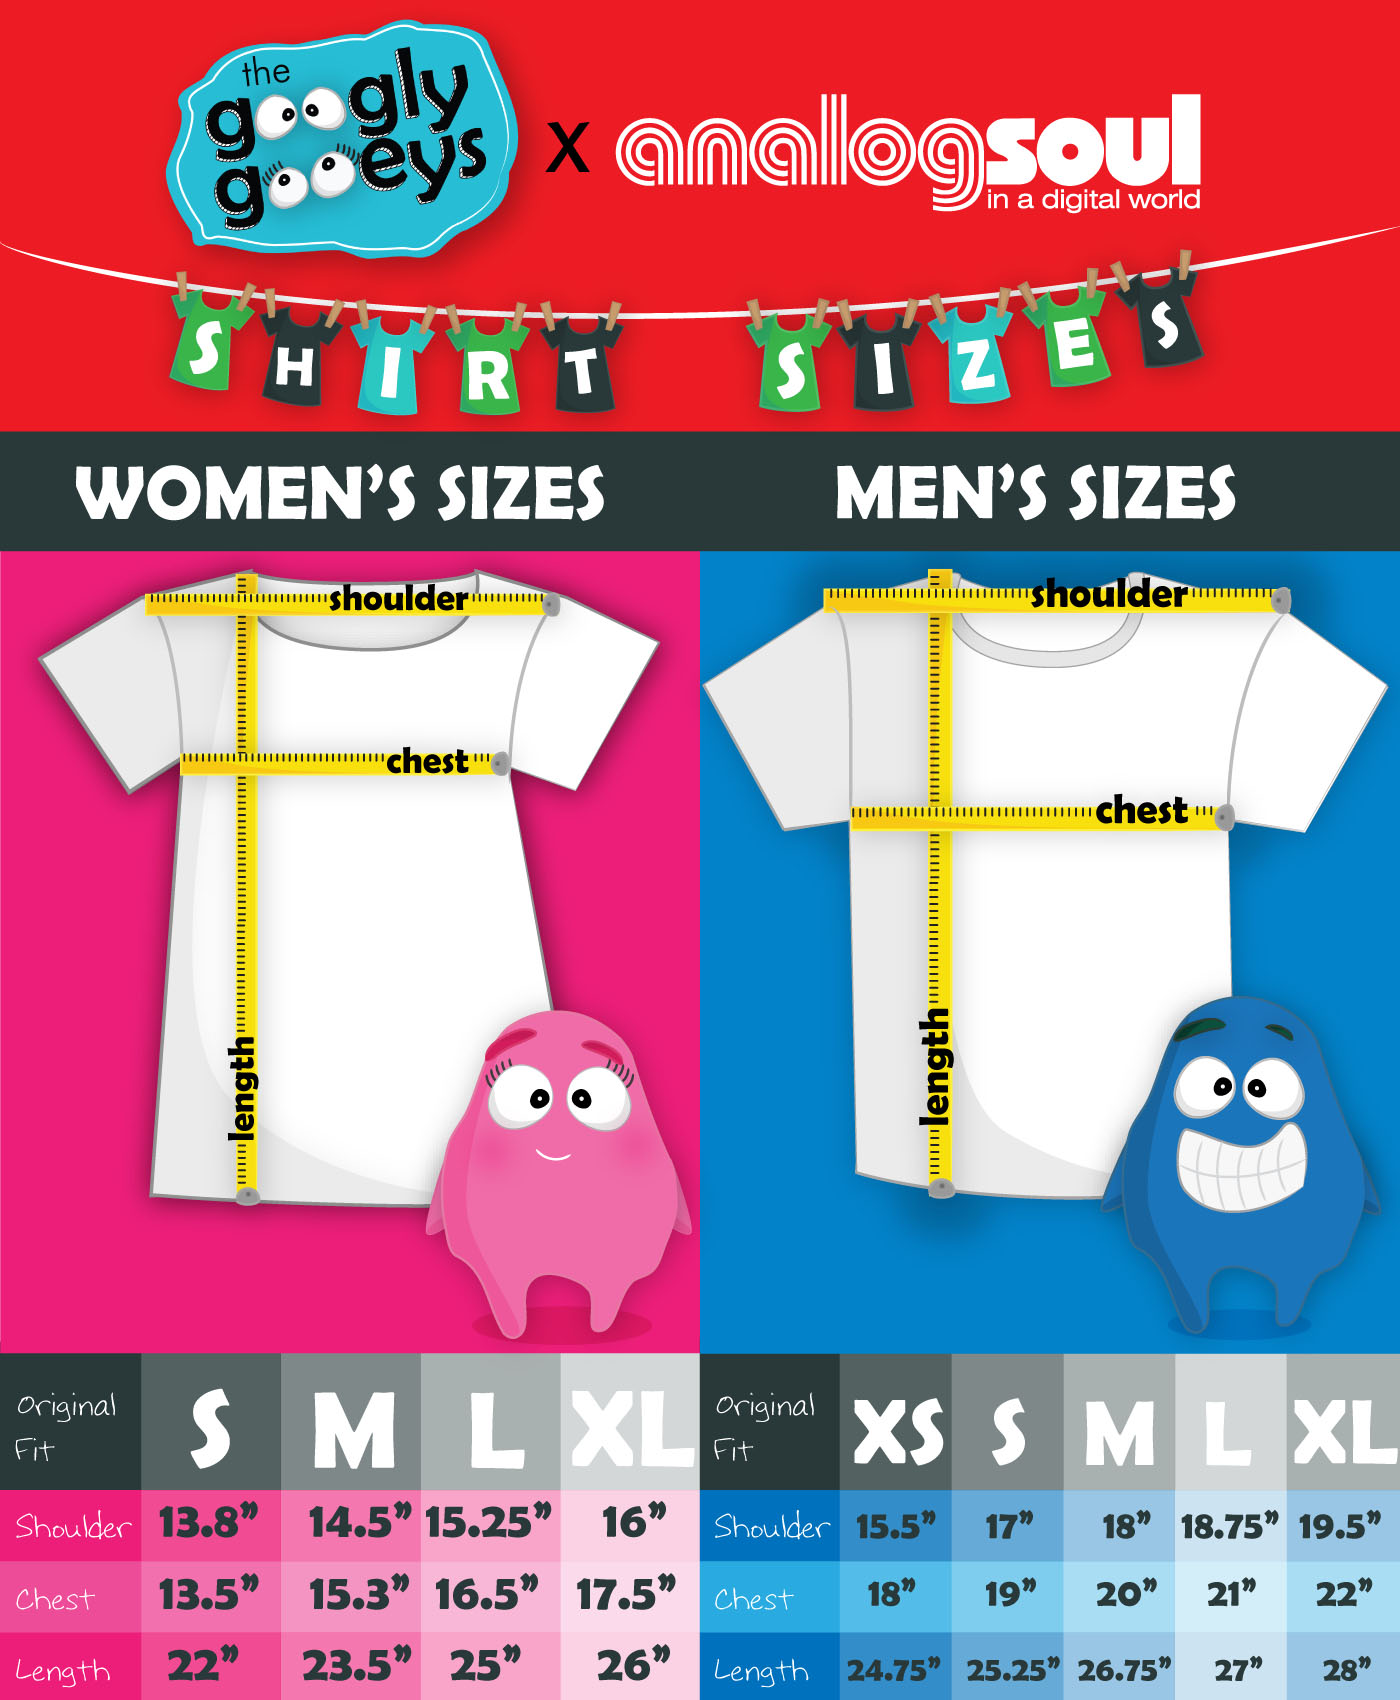 Googly Gooeys Shirts Sizing Chart time to buy some :)